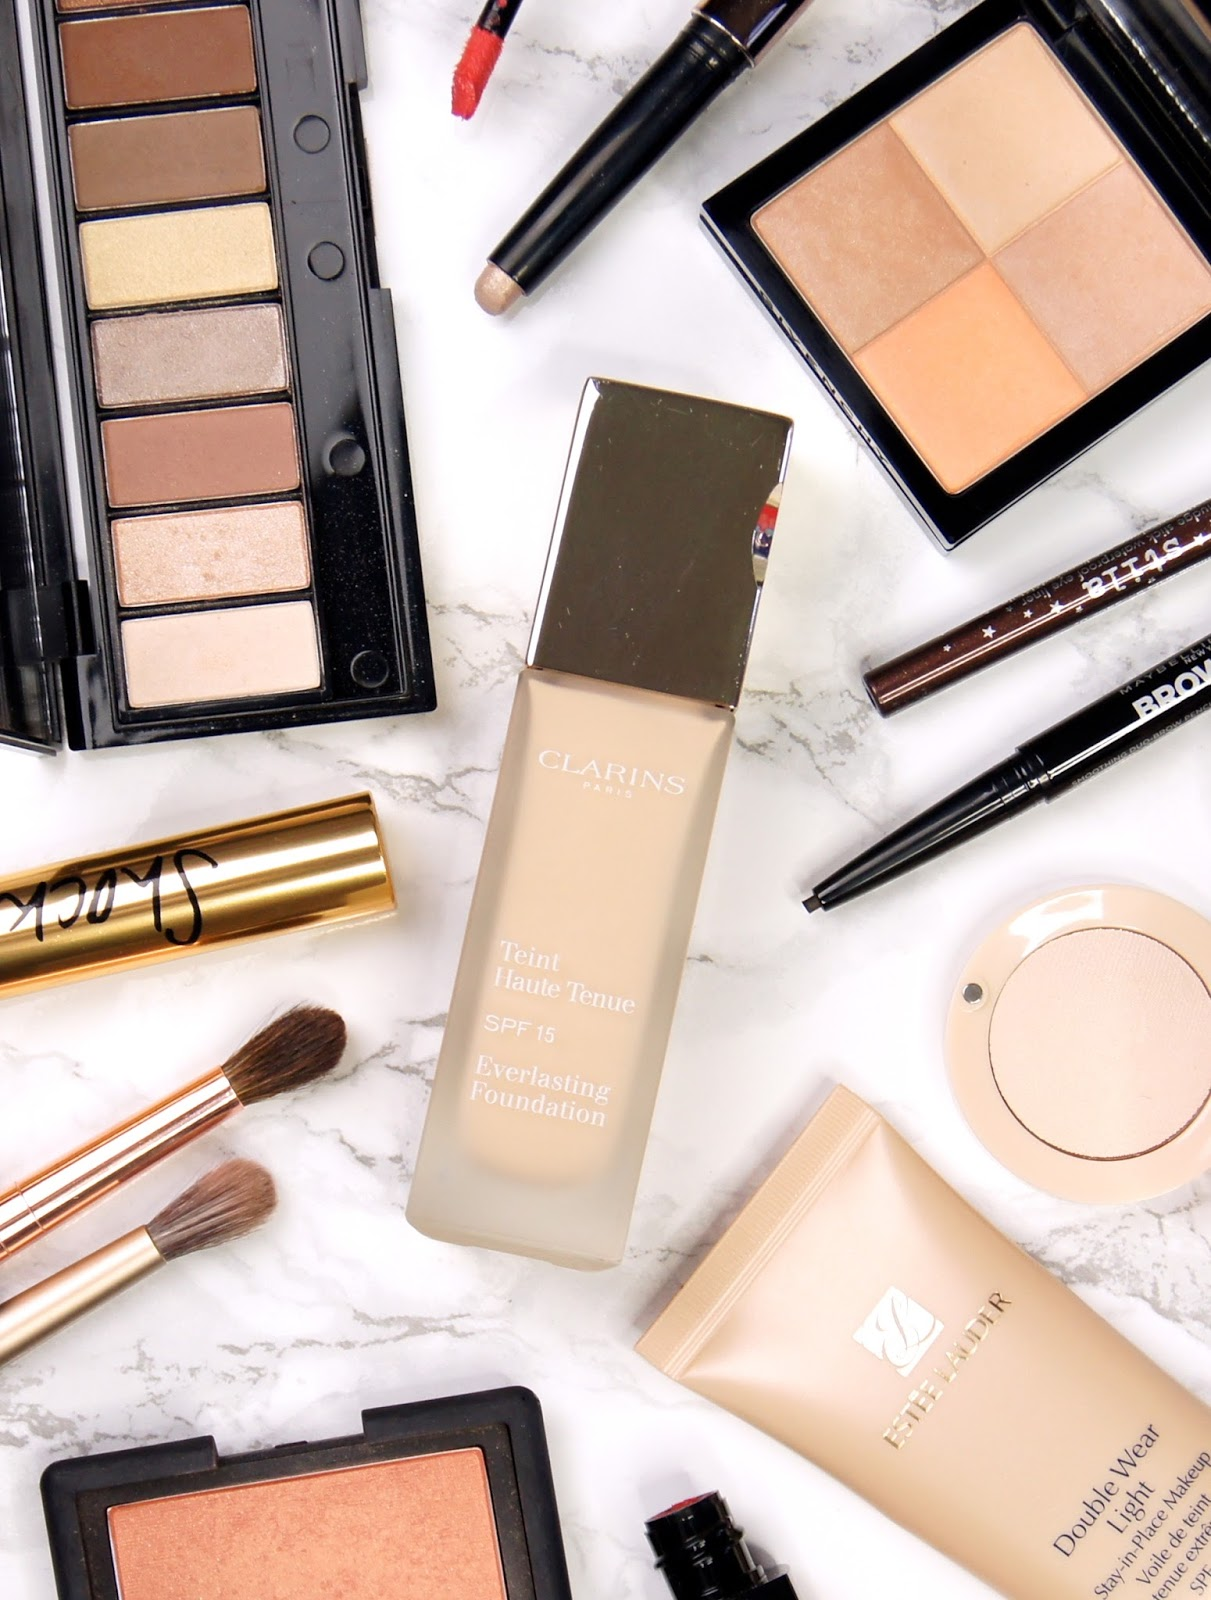 clarins everlasting foundation review swatches high coverage comfortable natural no caking